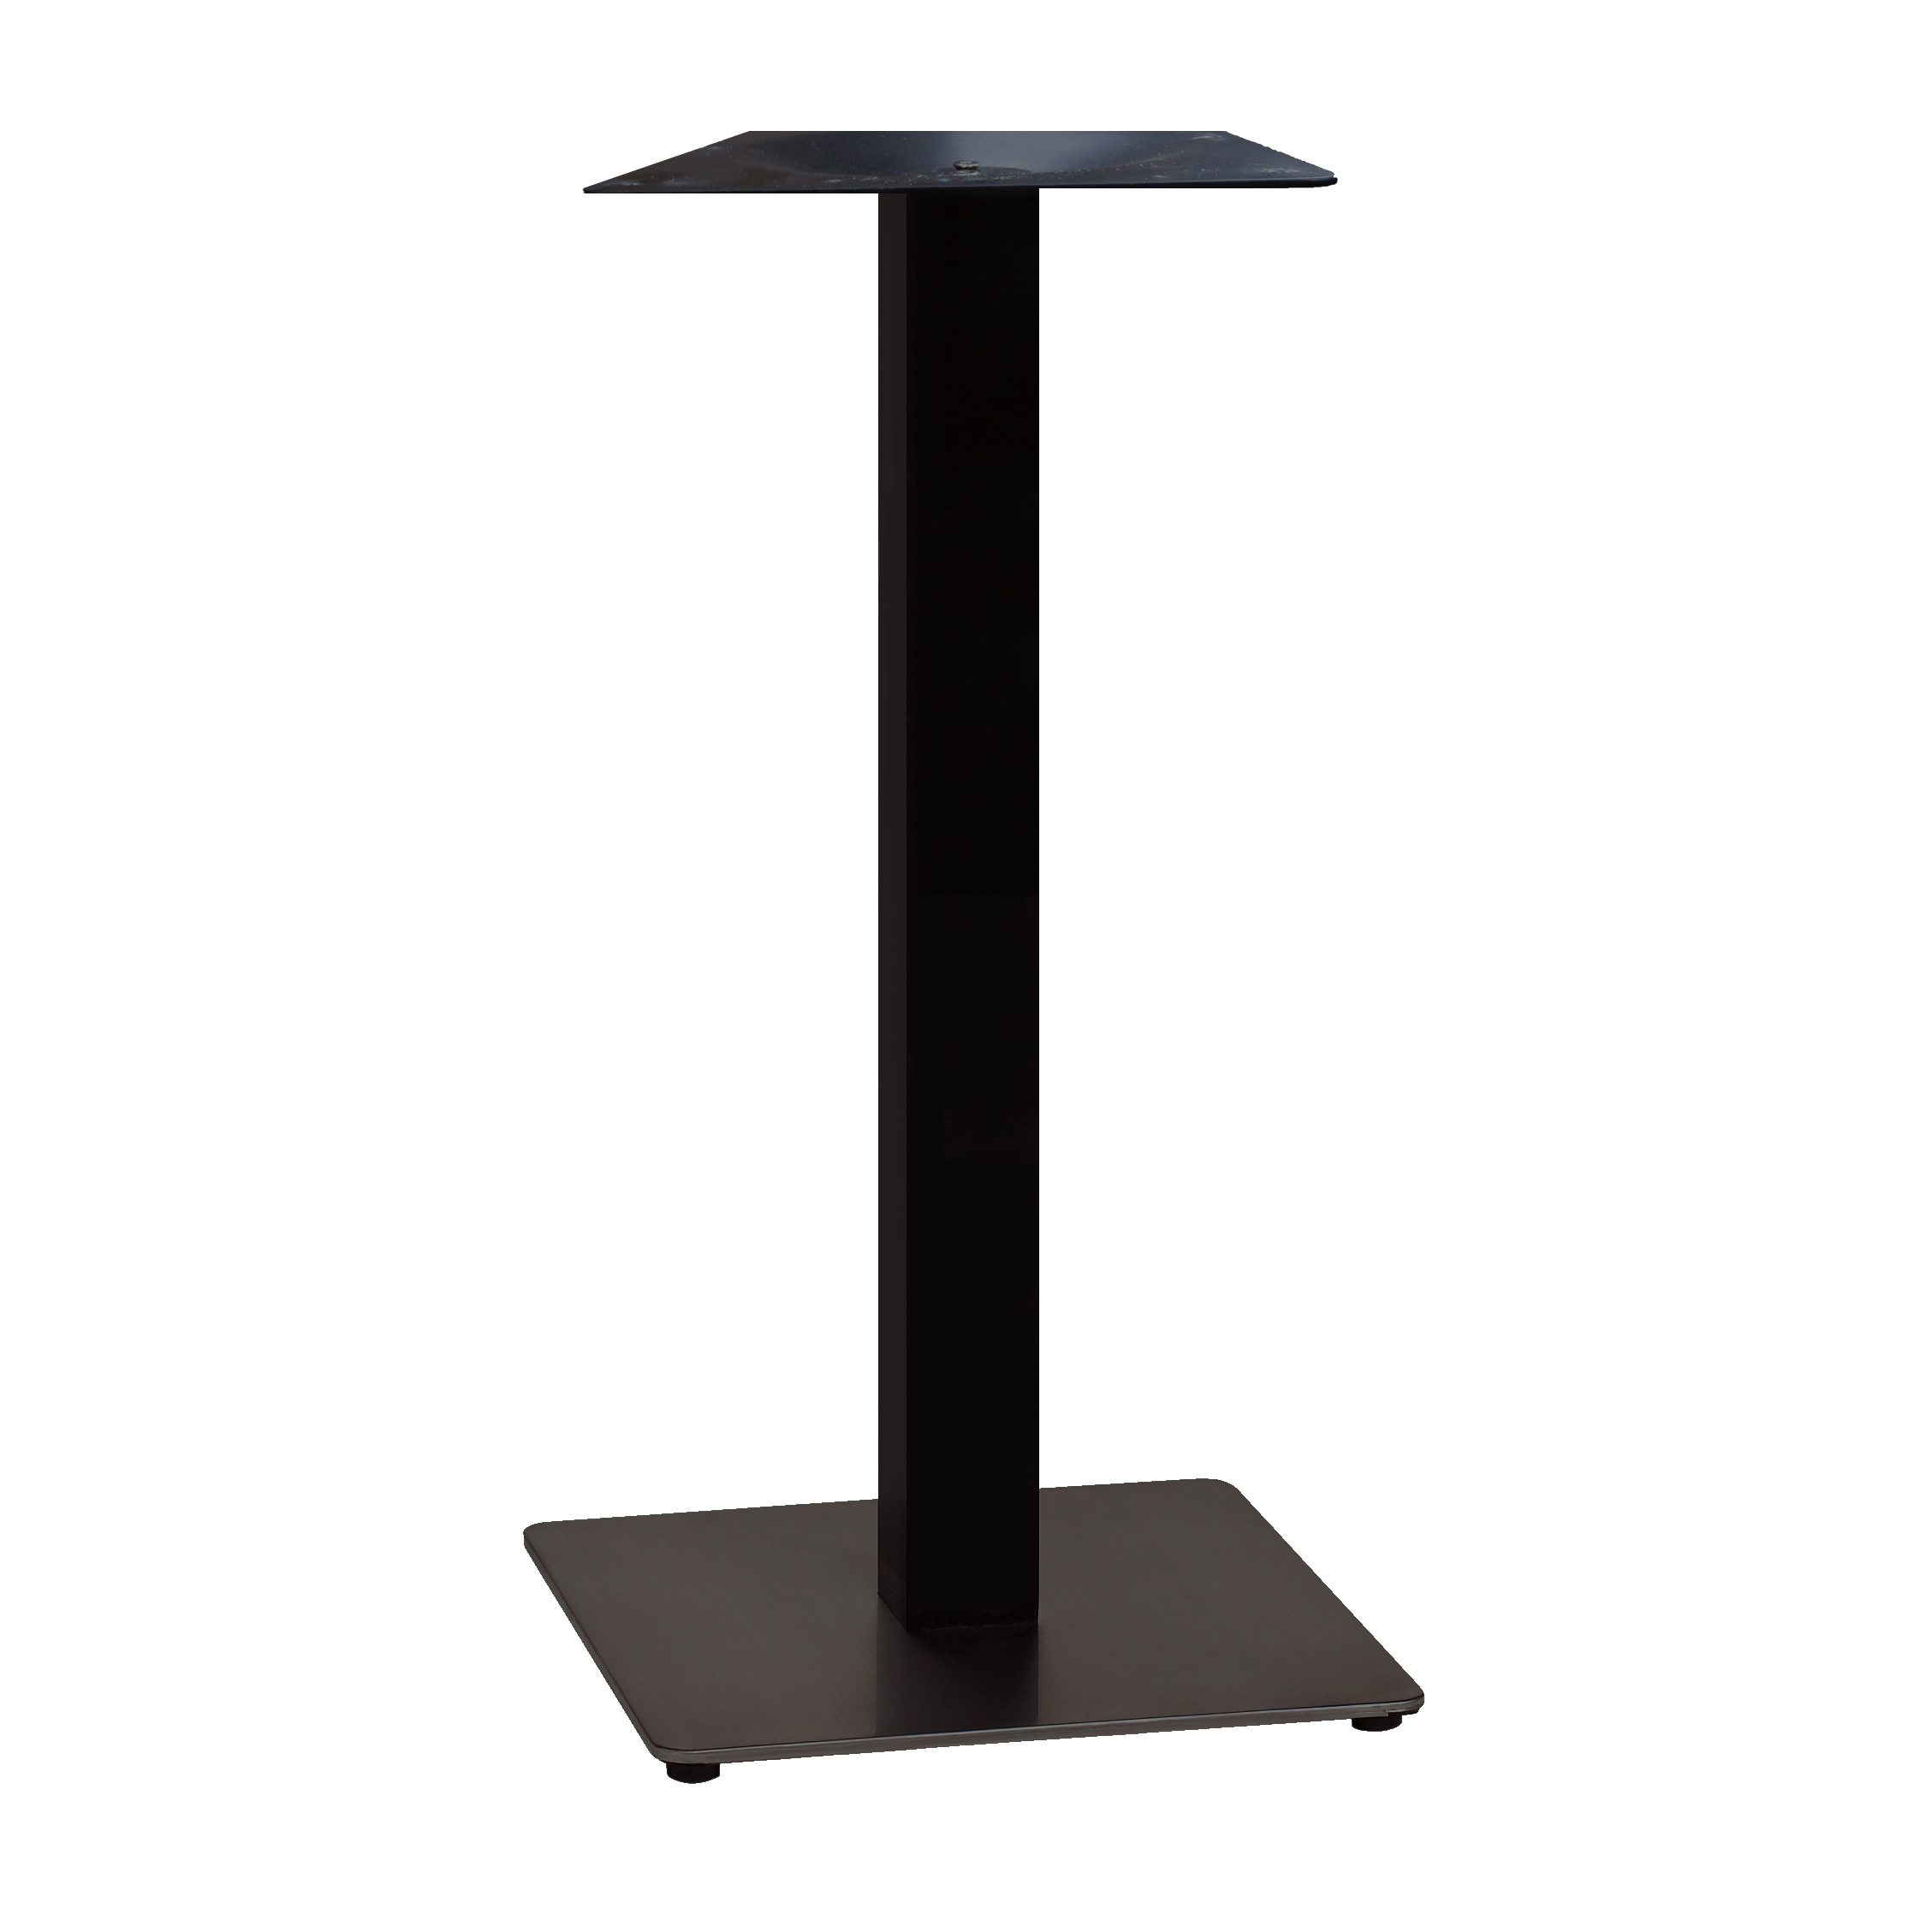 Grosfillex US507009 table base, metal